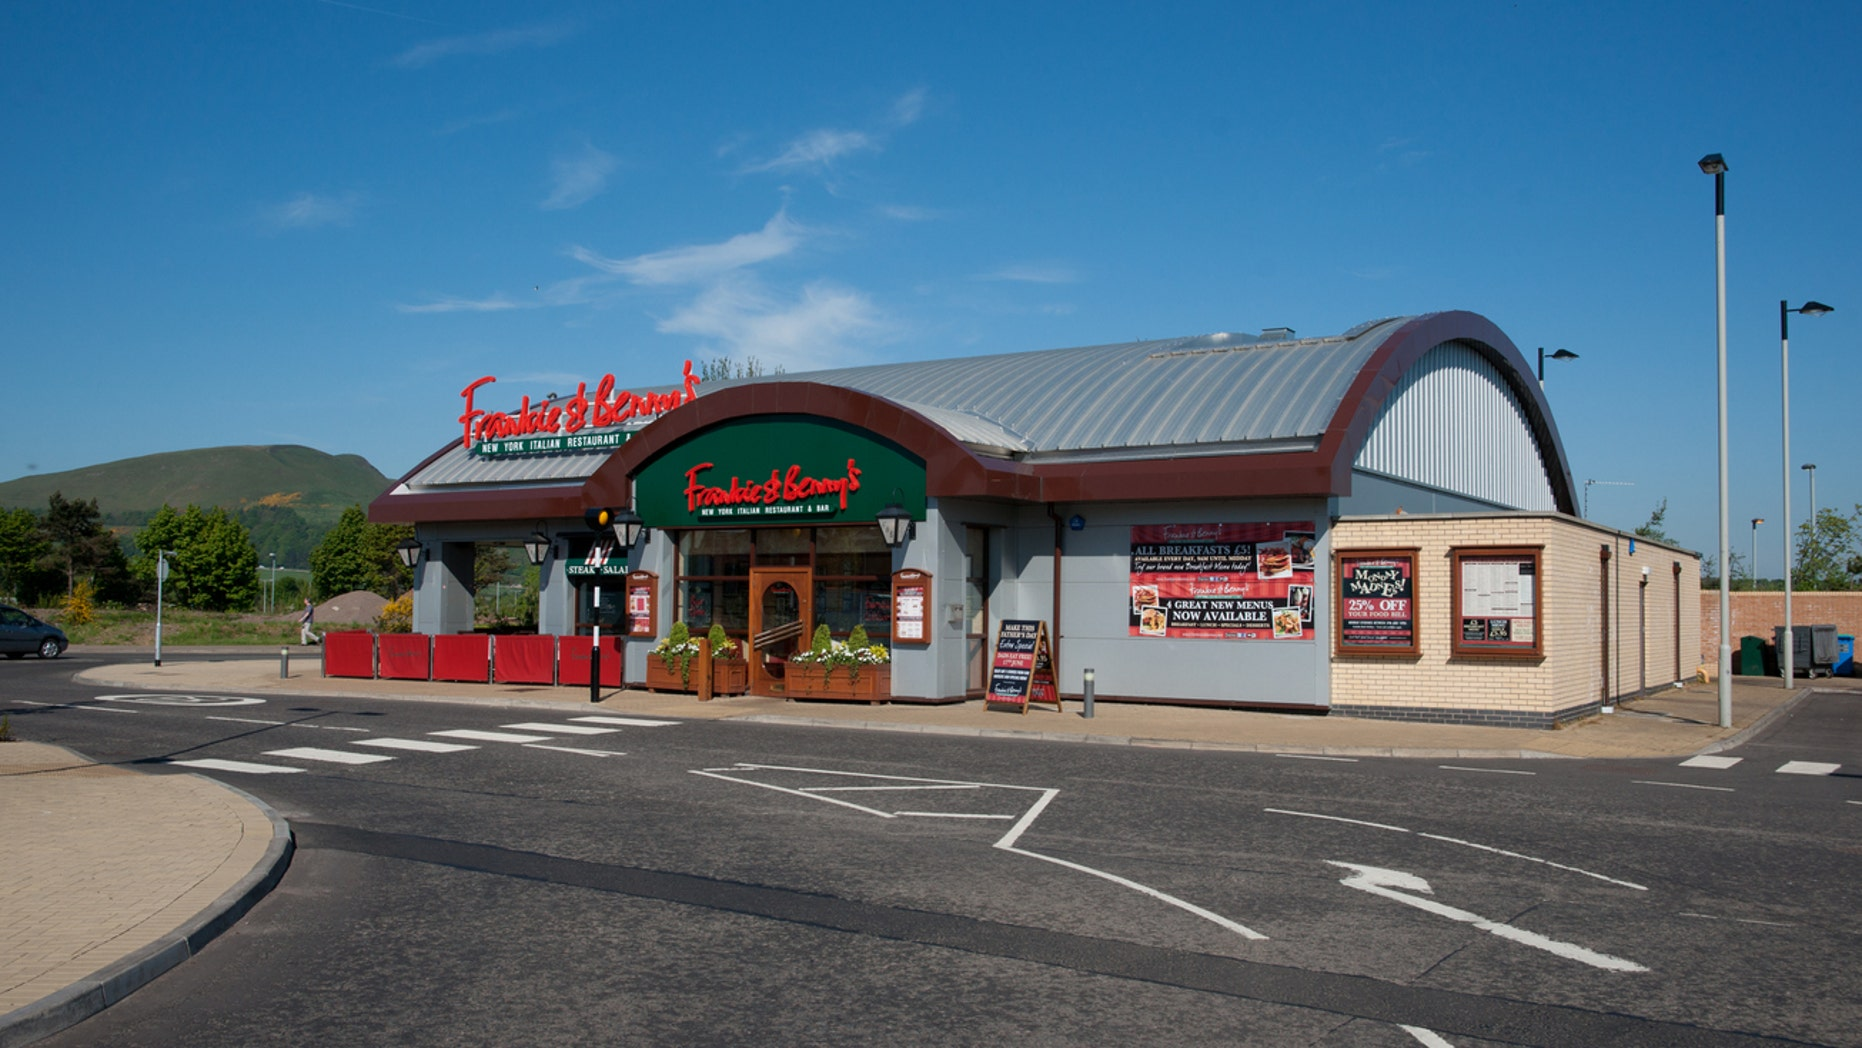 Frankie and Benny's in the U.K. is providing an incentive to get parents off their phones.